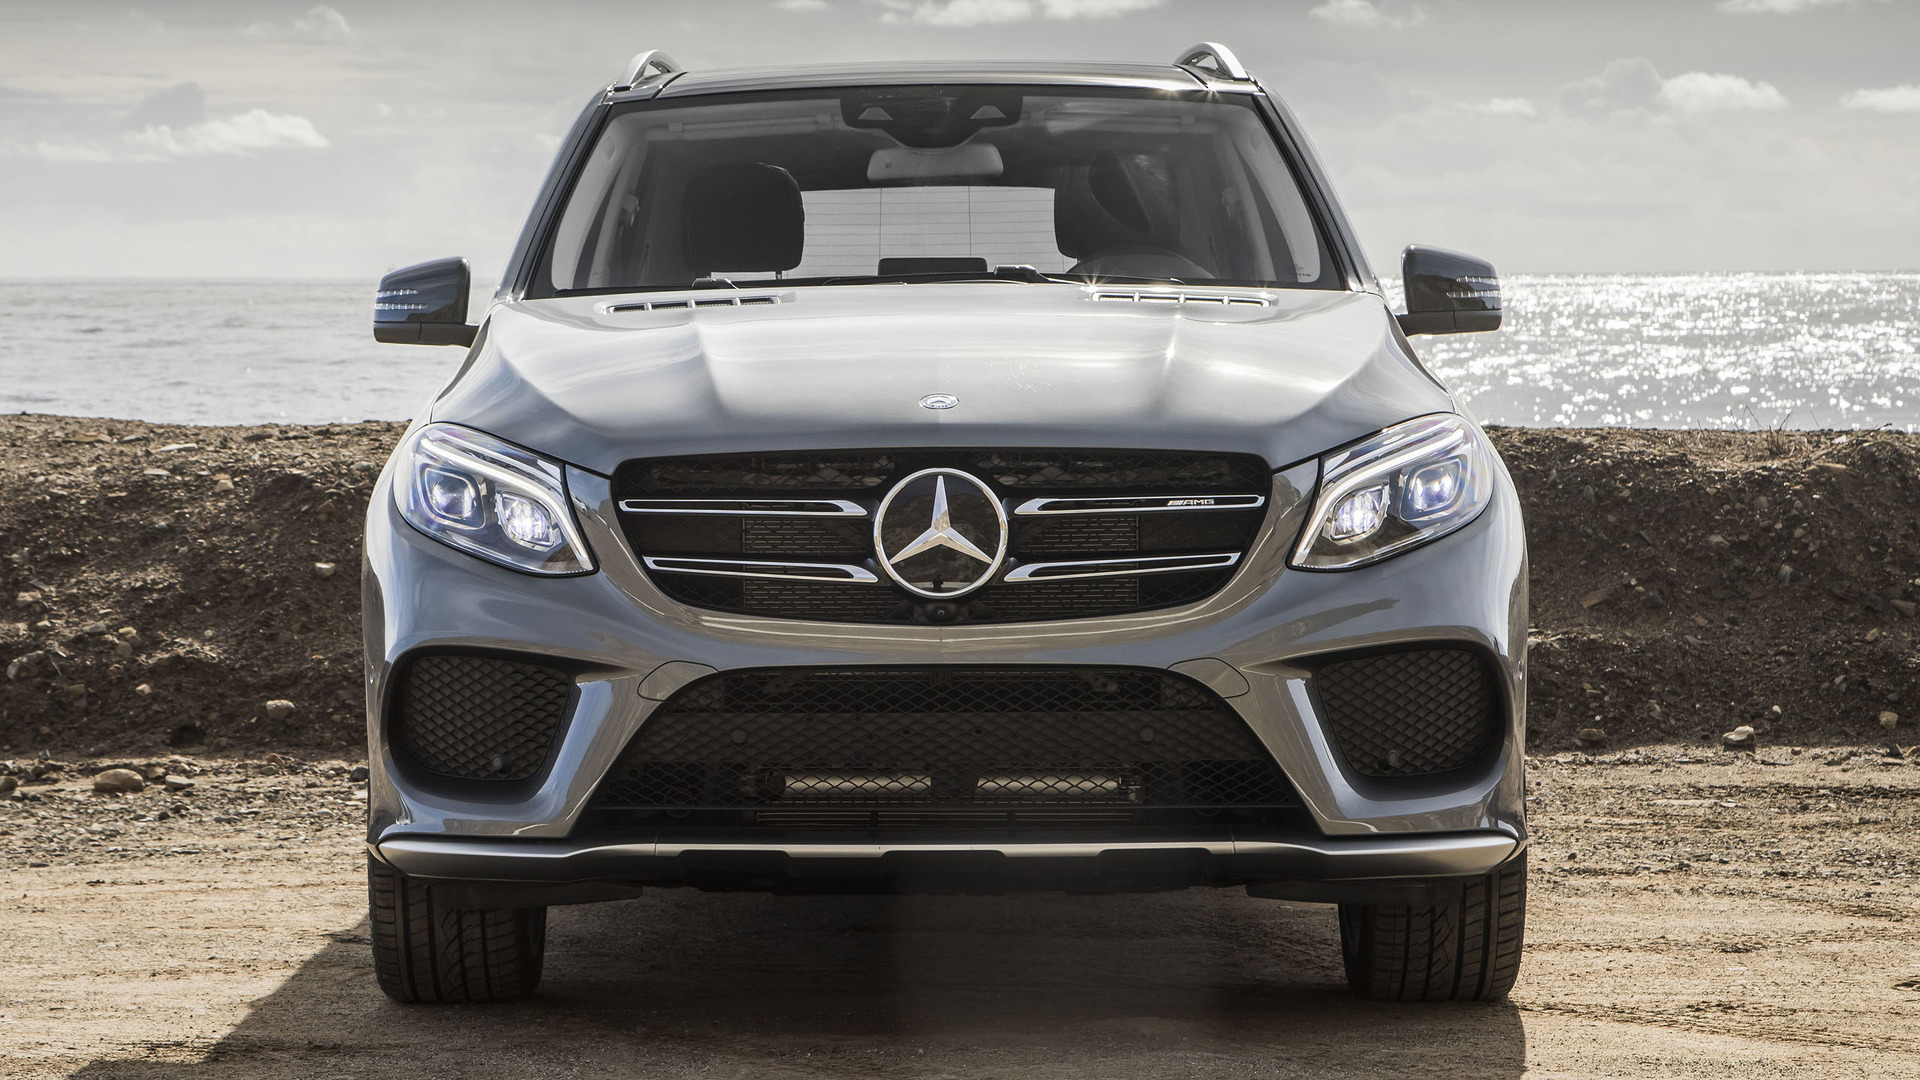 https://icdn-9.motor1.com/images/mgl/6xkgr/s1/2017-mercedes-amg-gle43-review.jpg